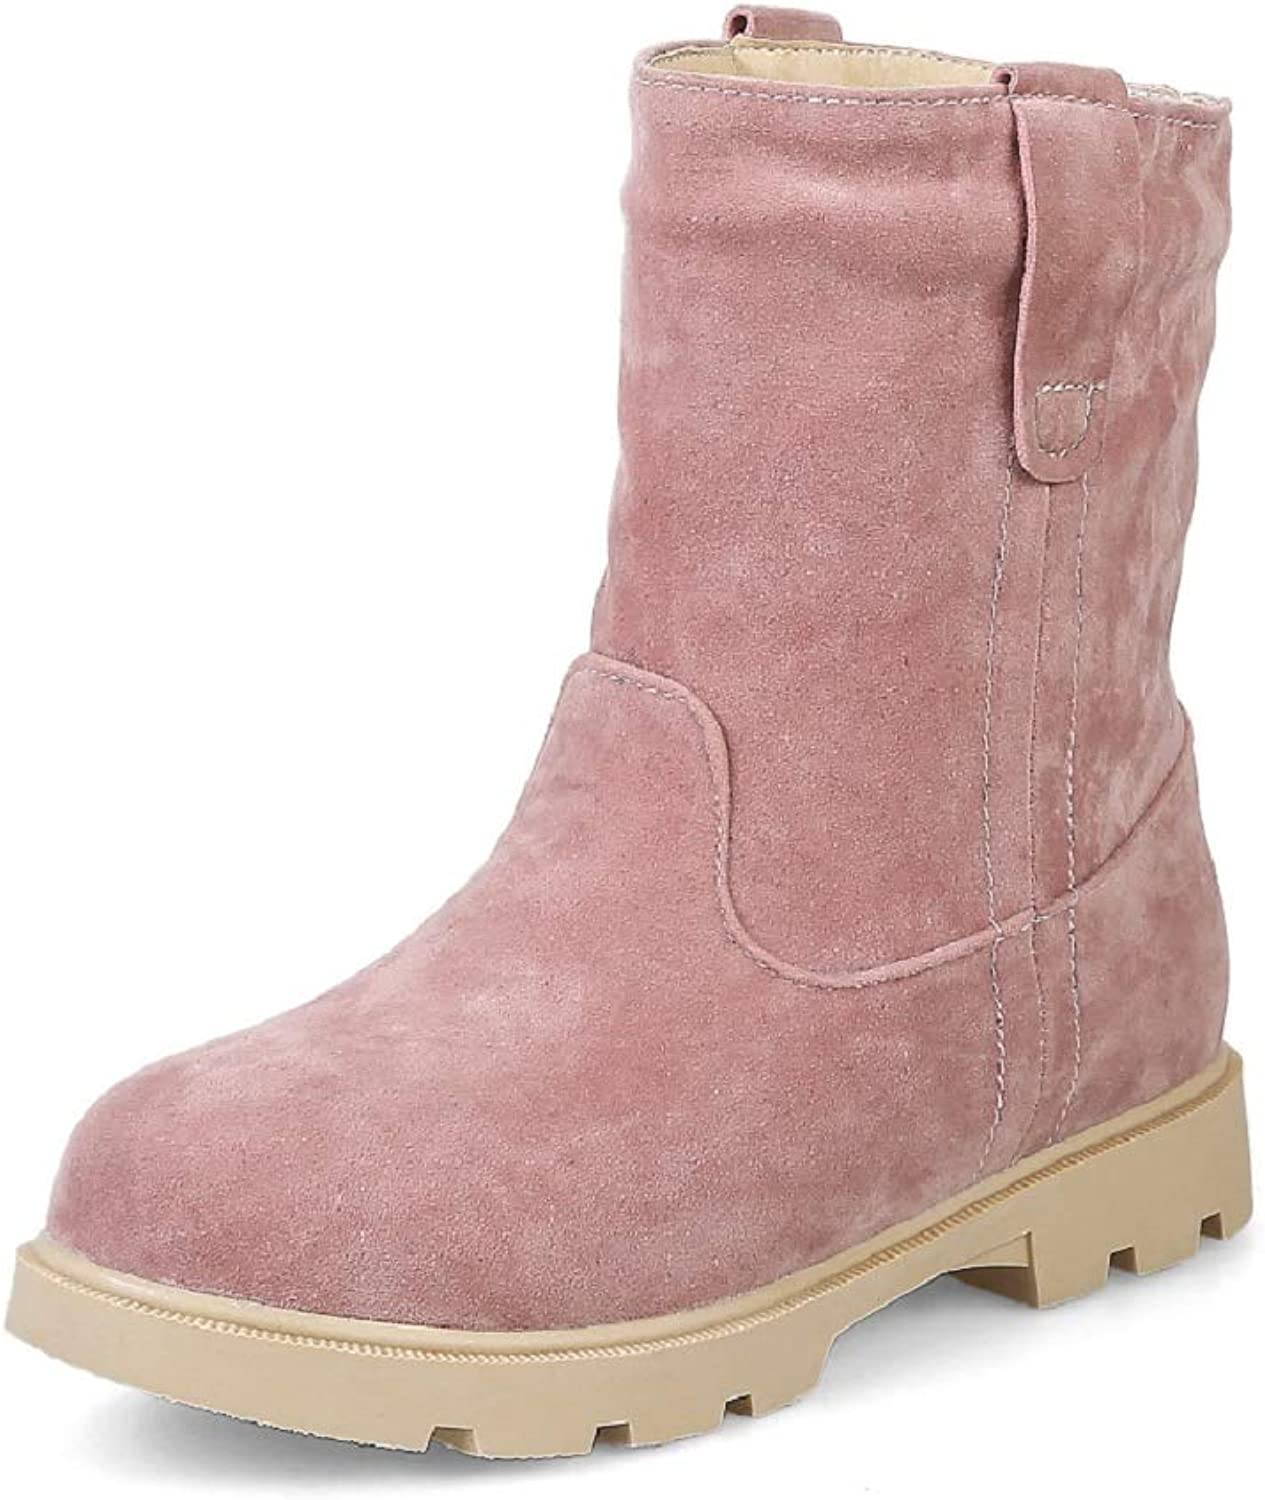 Women Snow Boots Ankle Casual Ankle Boots Trainer Autumn Winter Warm Handmade Army Transer Combat Boots Size Flat Sneakers Warm (color   Pink Thick Velvet, Size   42)